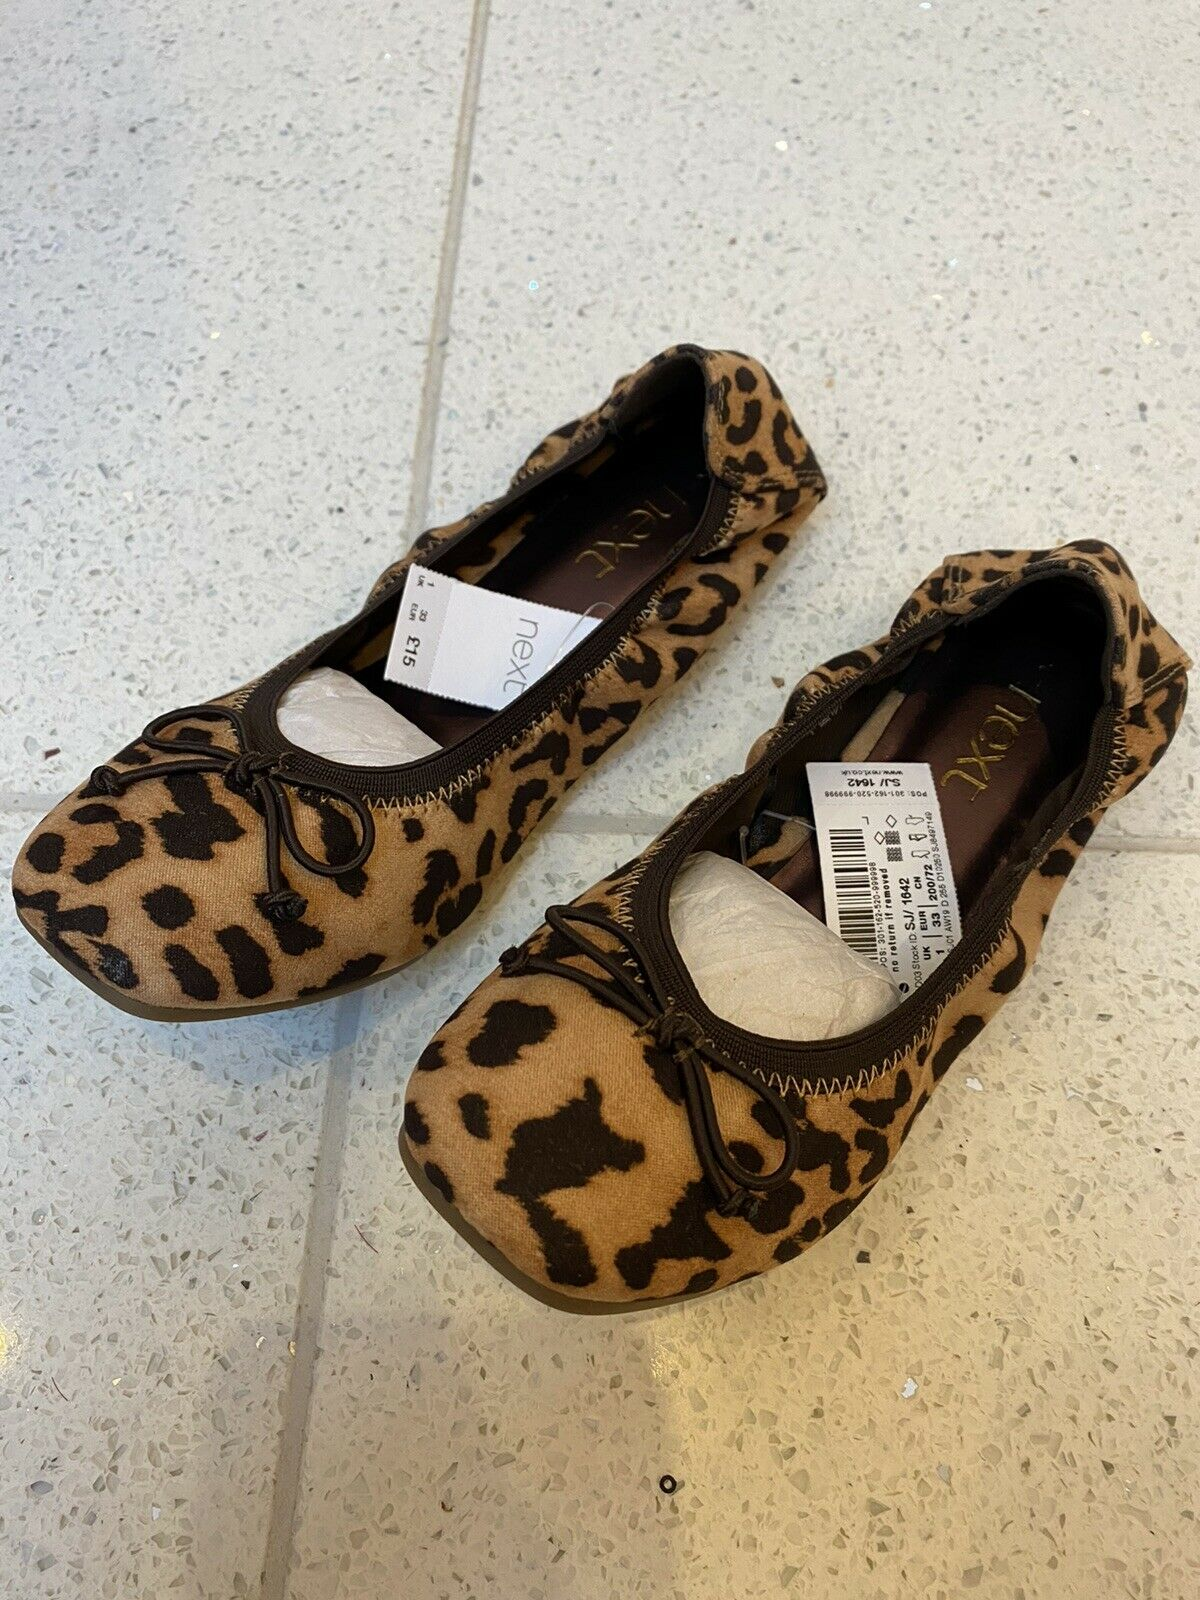 NEW UK Size 1 Ladies Shoes Ballet Pumps Leopard Print Animal Stretchy Bow Flat